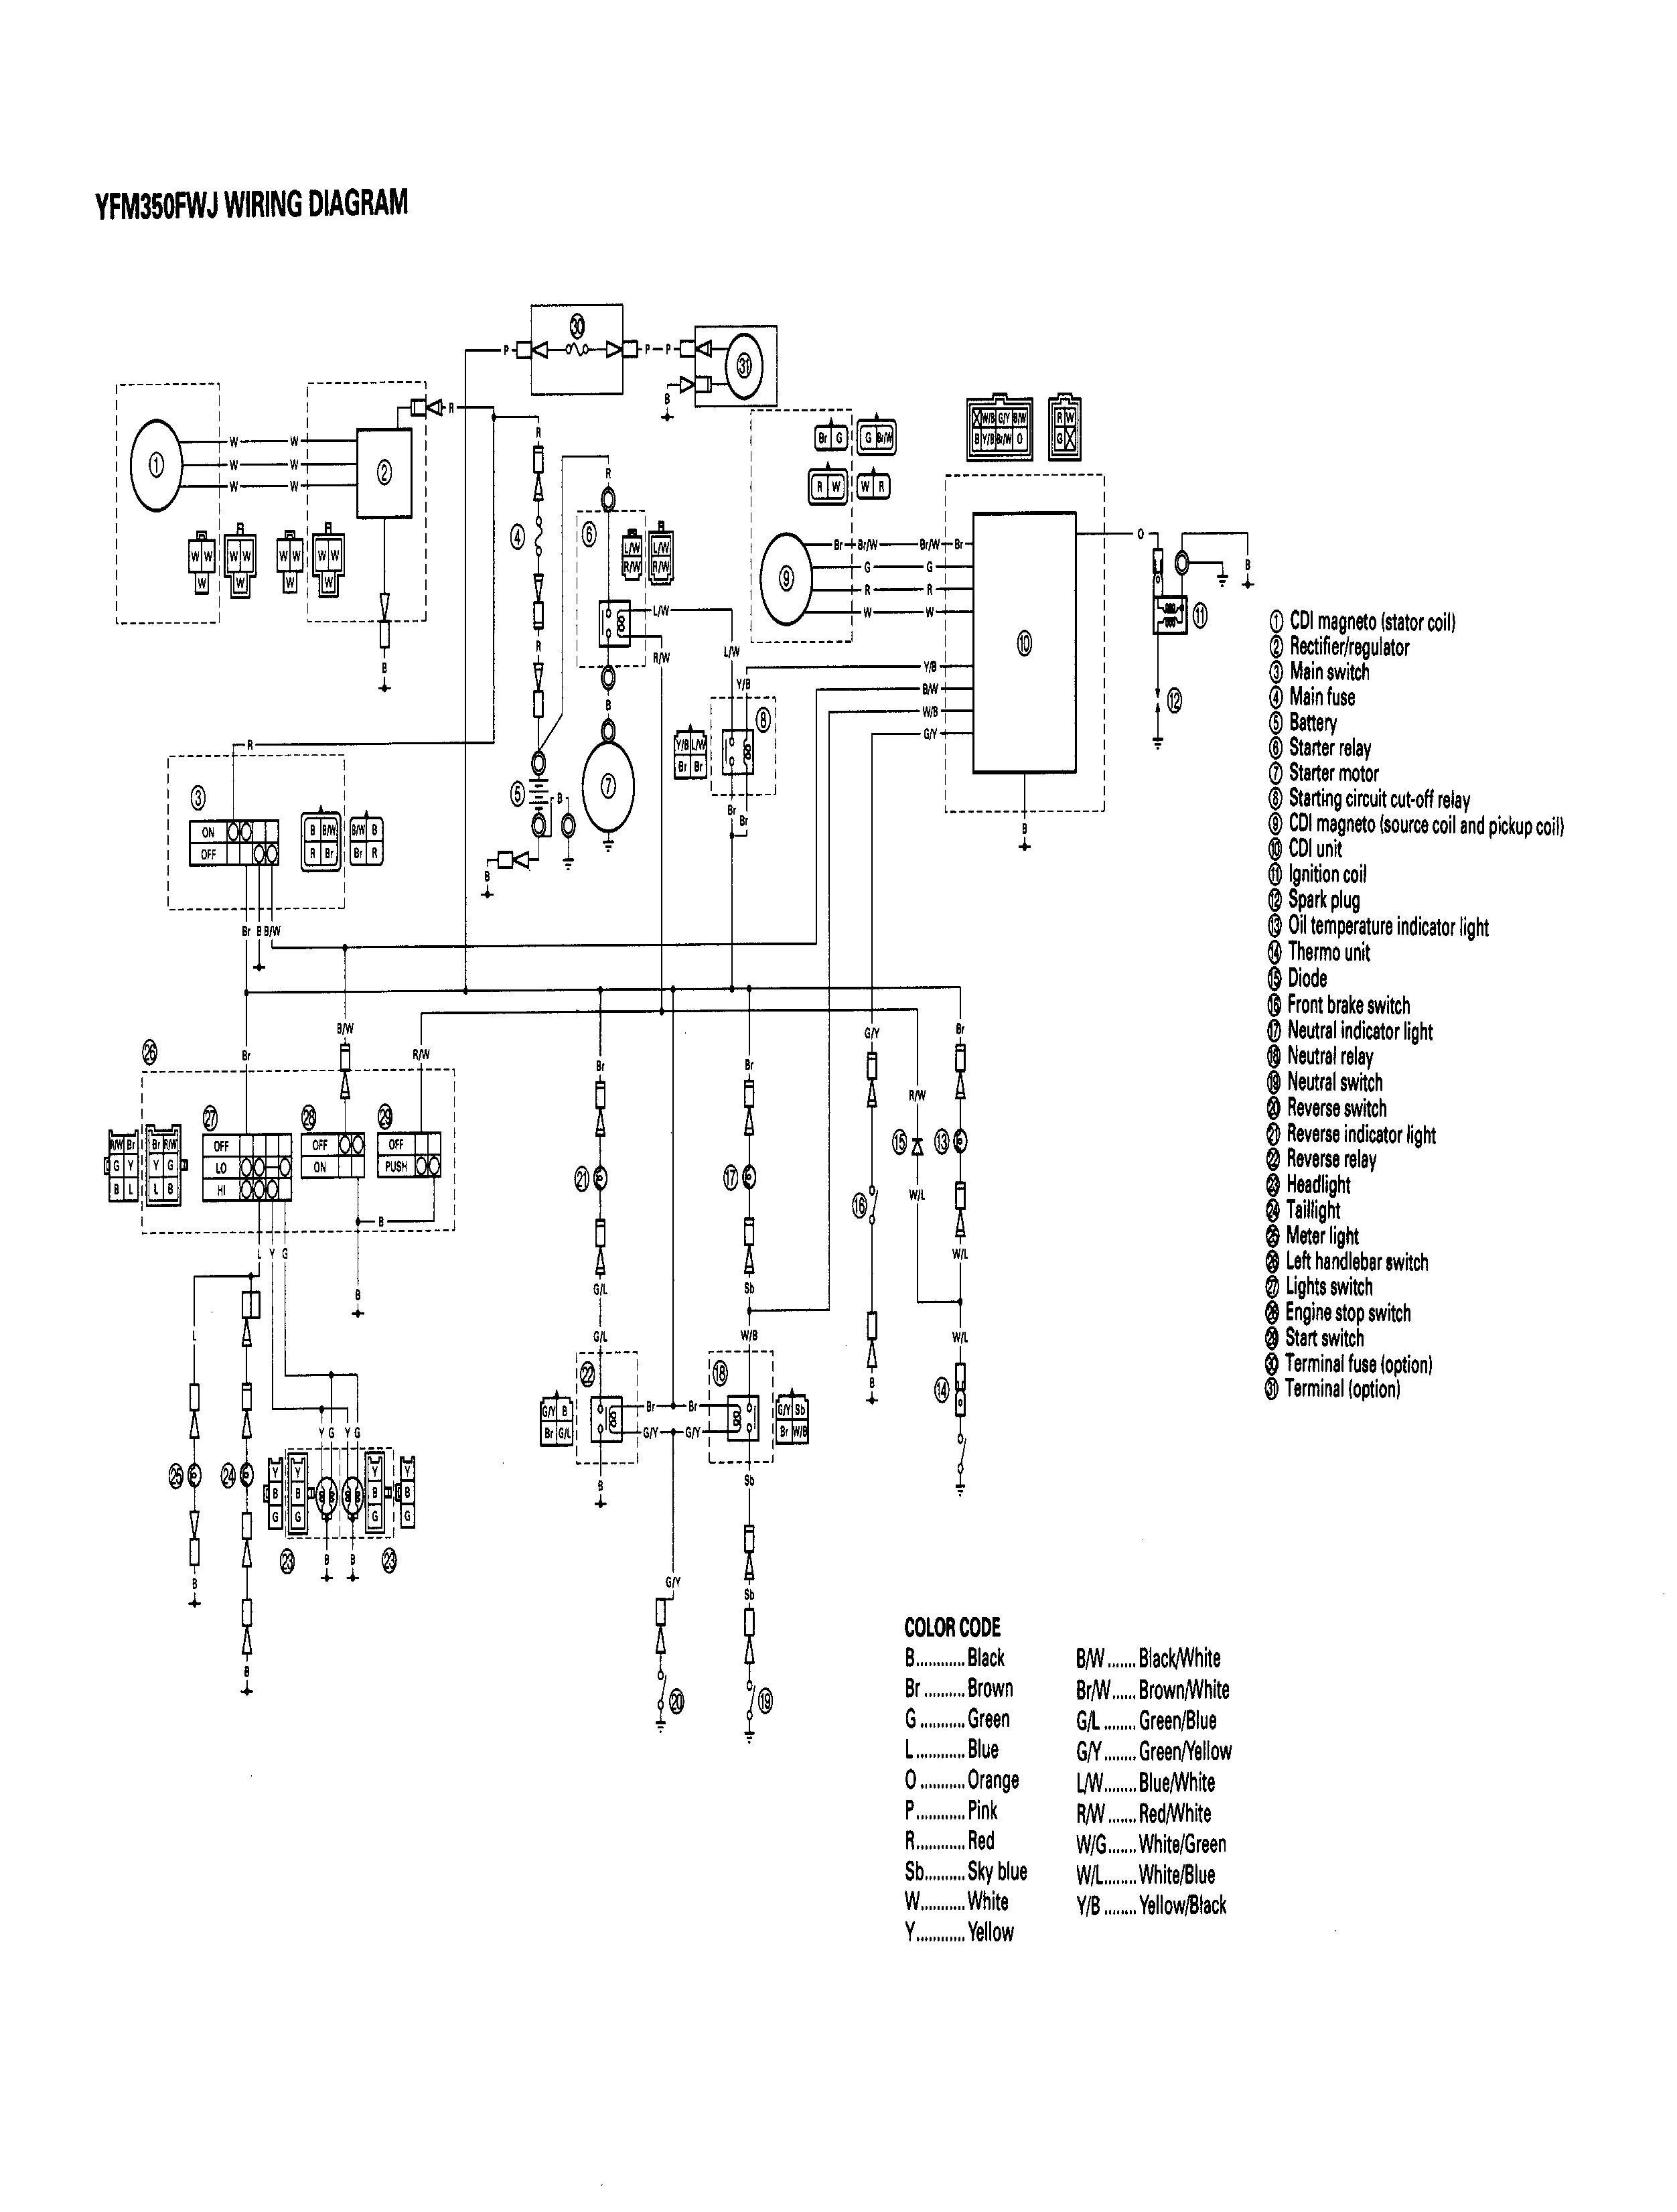 DIAGRAM] Yfm600 Grizzly Wiring Diagram 1997 FULL Version HD ... on